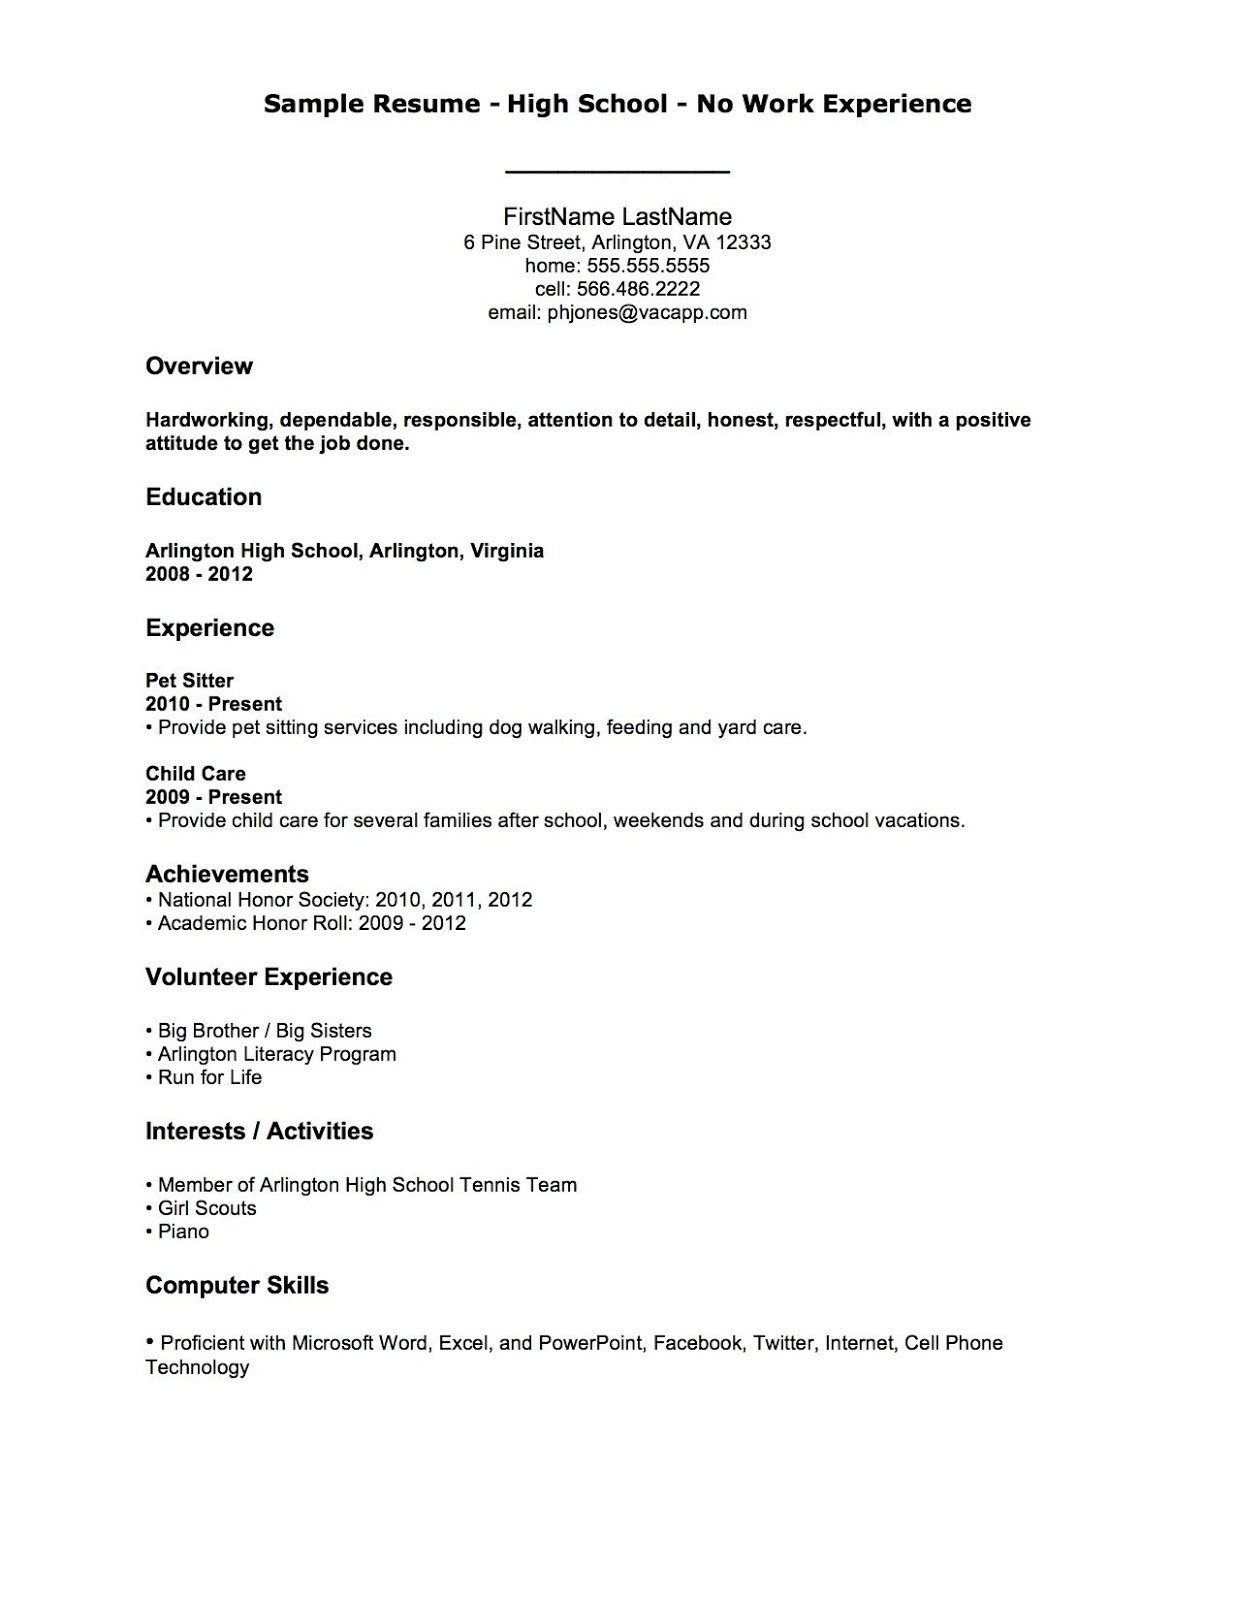 hvac mechanical engineer sample resume hvac mechanical engineer - Hvac Resume Template